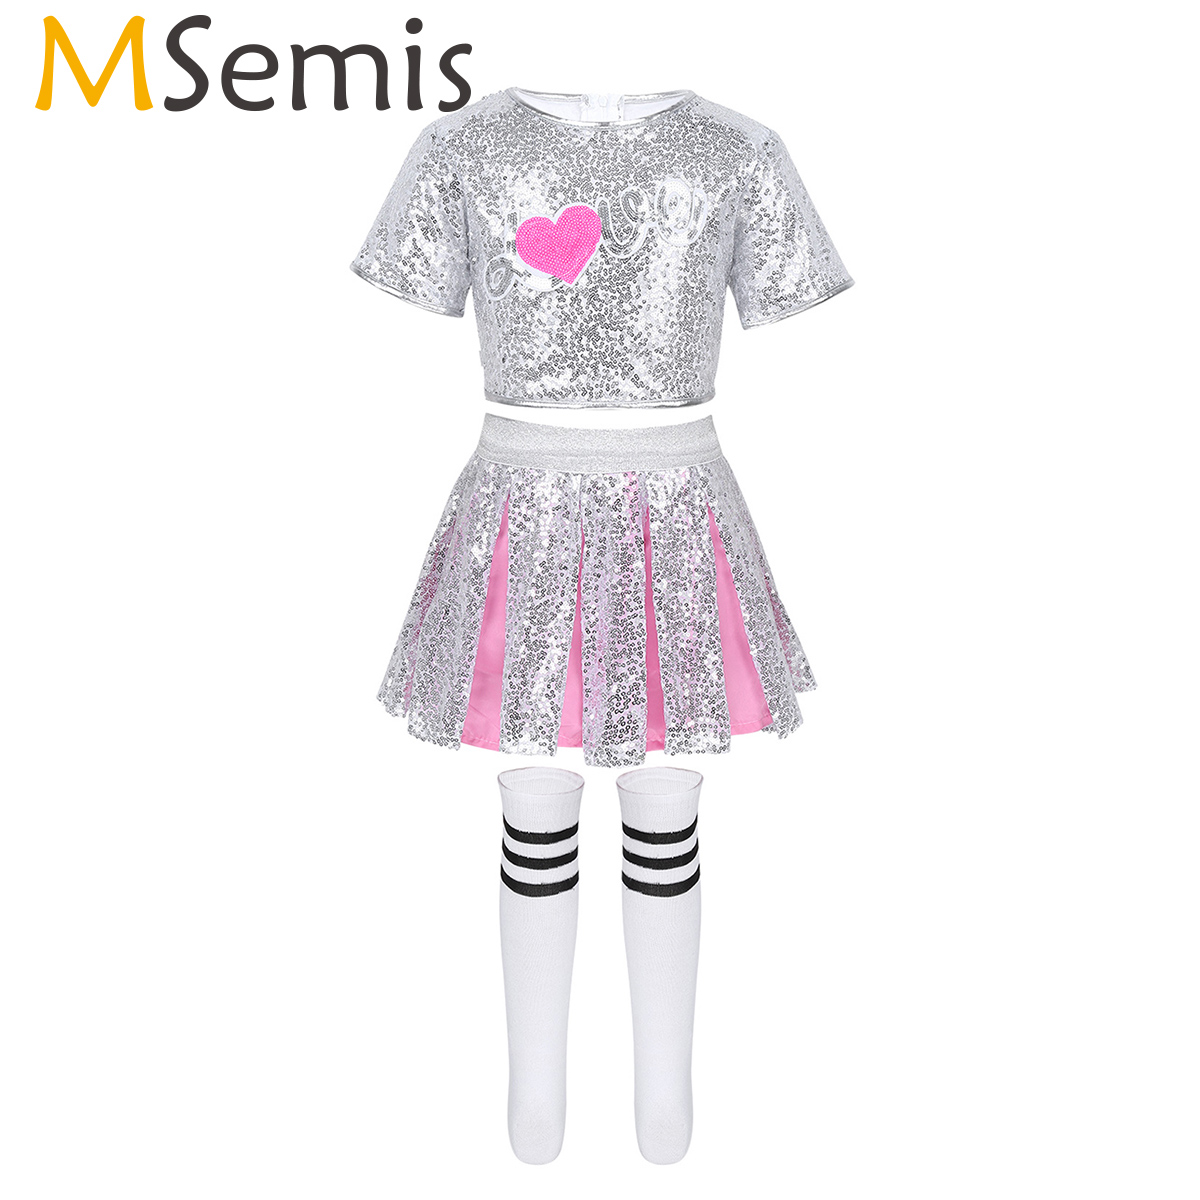 Kids Girls Jazz Hip Hop Modern Rave Clothes Outfit Dance Costume Shiny Sequins Love Applique Crop Top Skirt With Striped Socks